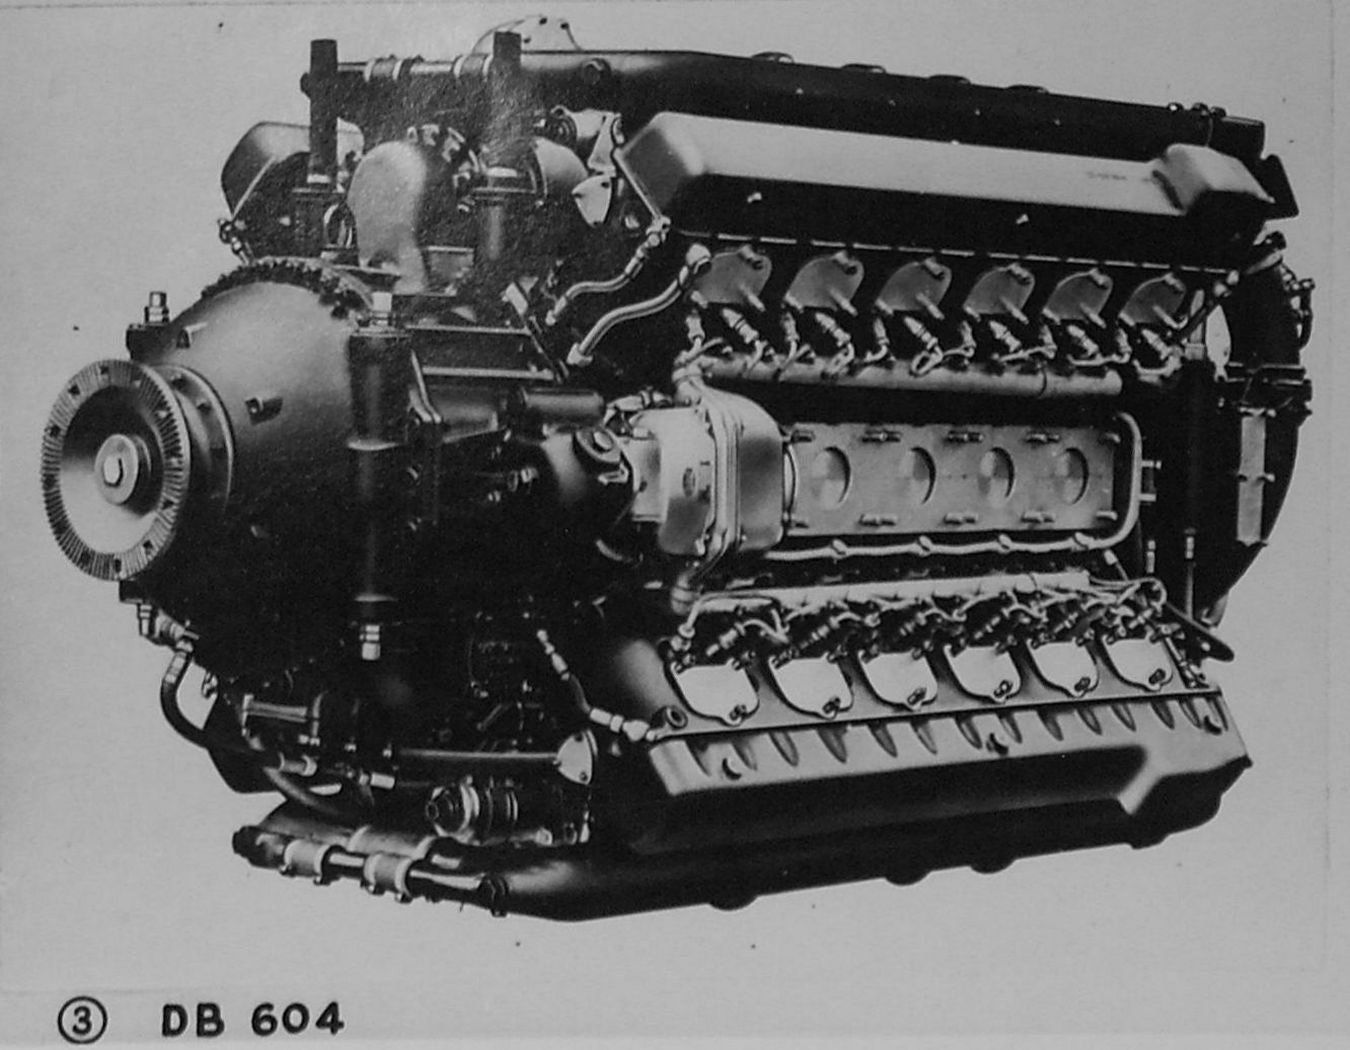 Pin by Walter Shipman on Aircraft Engines | Aircraft engine